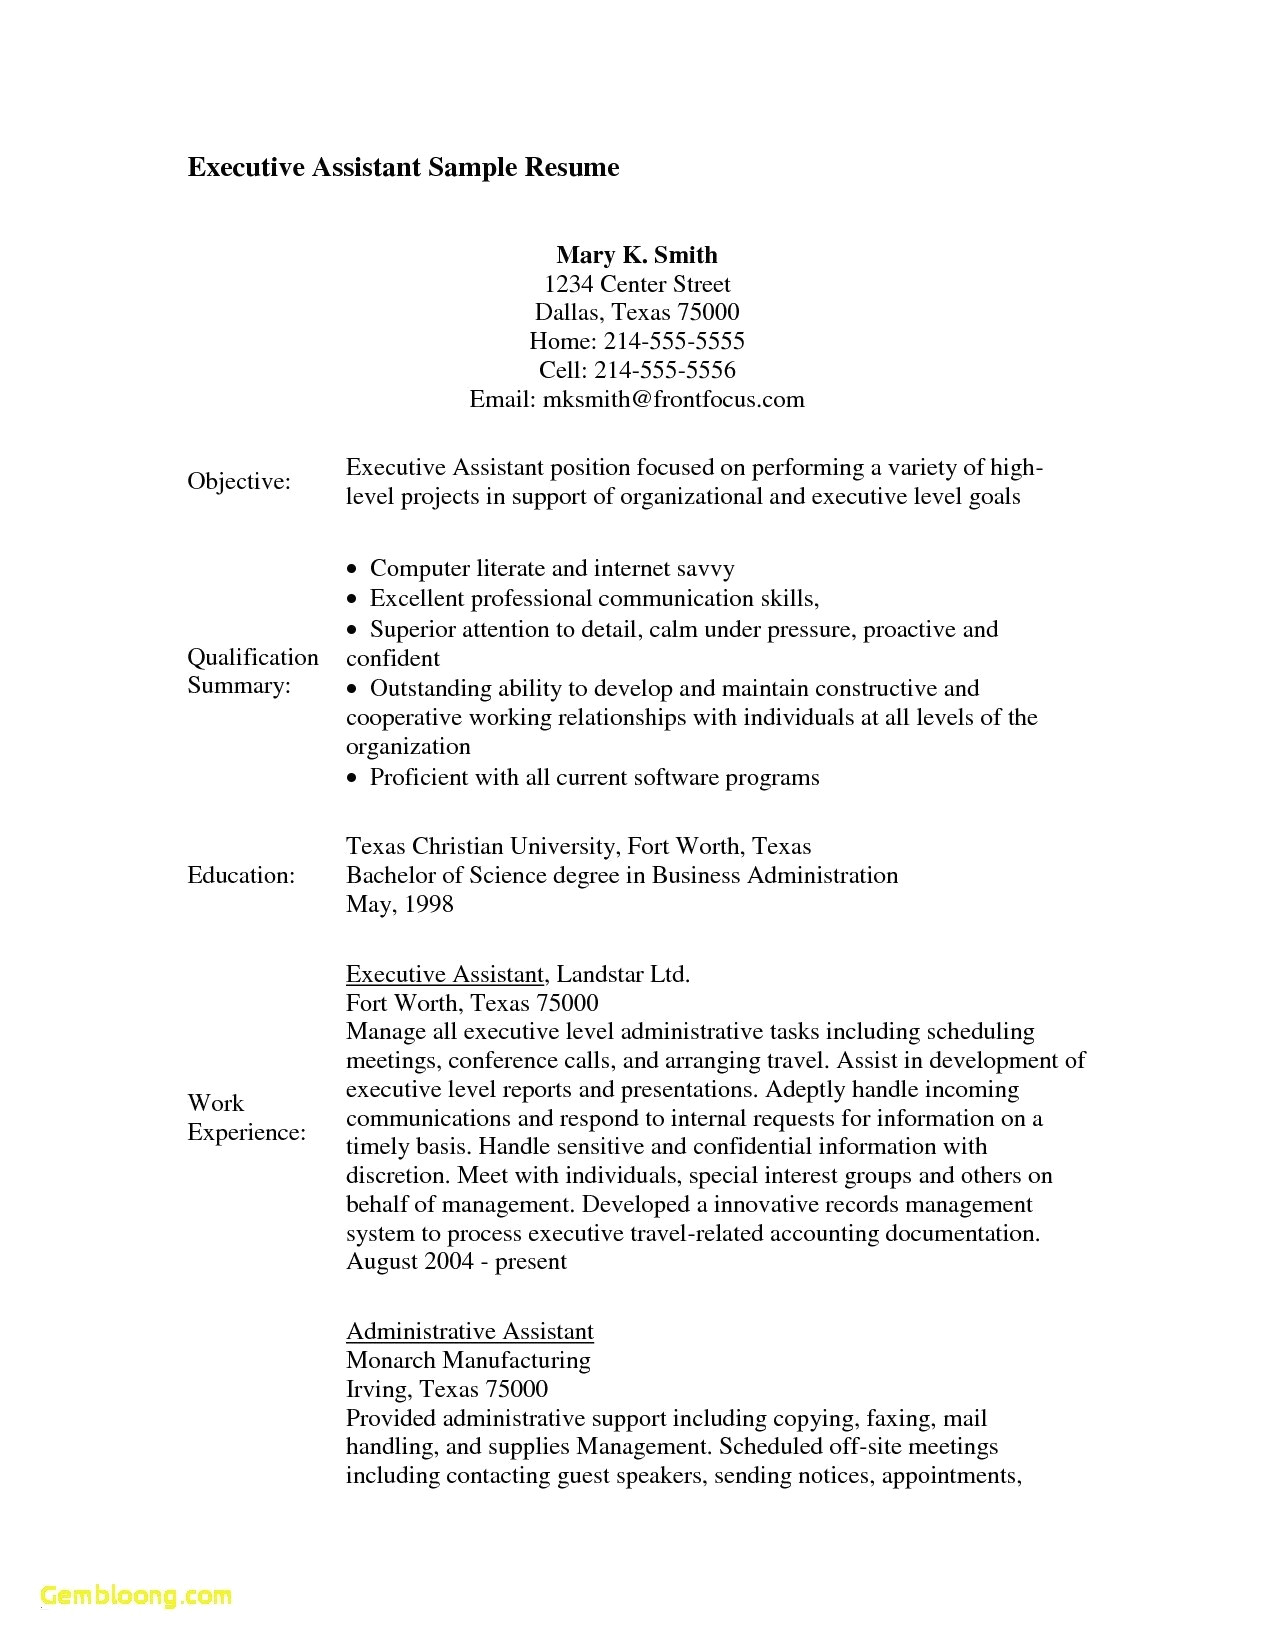 retail resume summary example-Administrative assistant Resume Summary Best Unique Retail Resume Sample Awesome Resume Template Free Word New Od 19-r